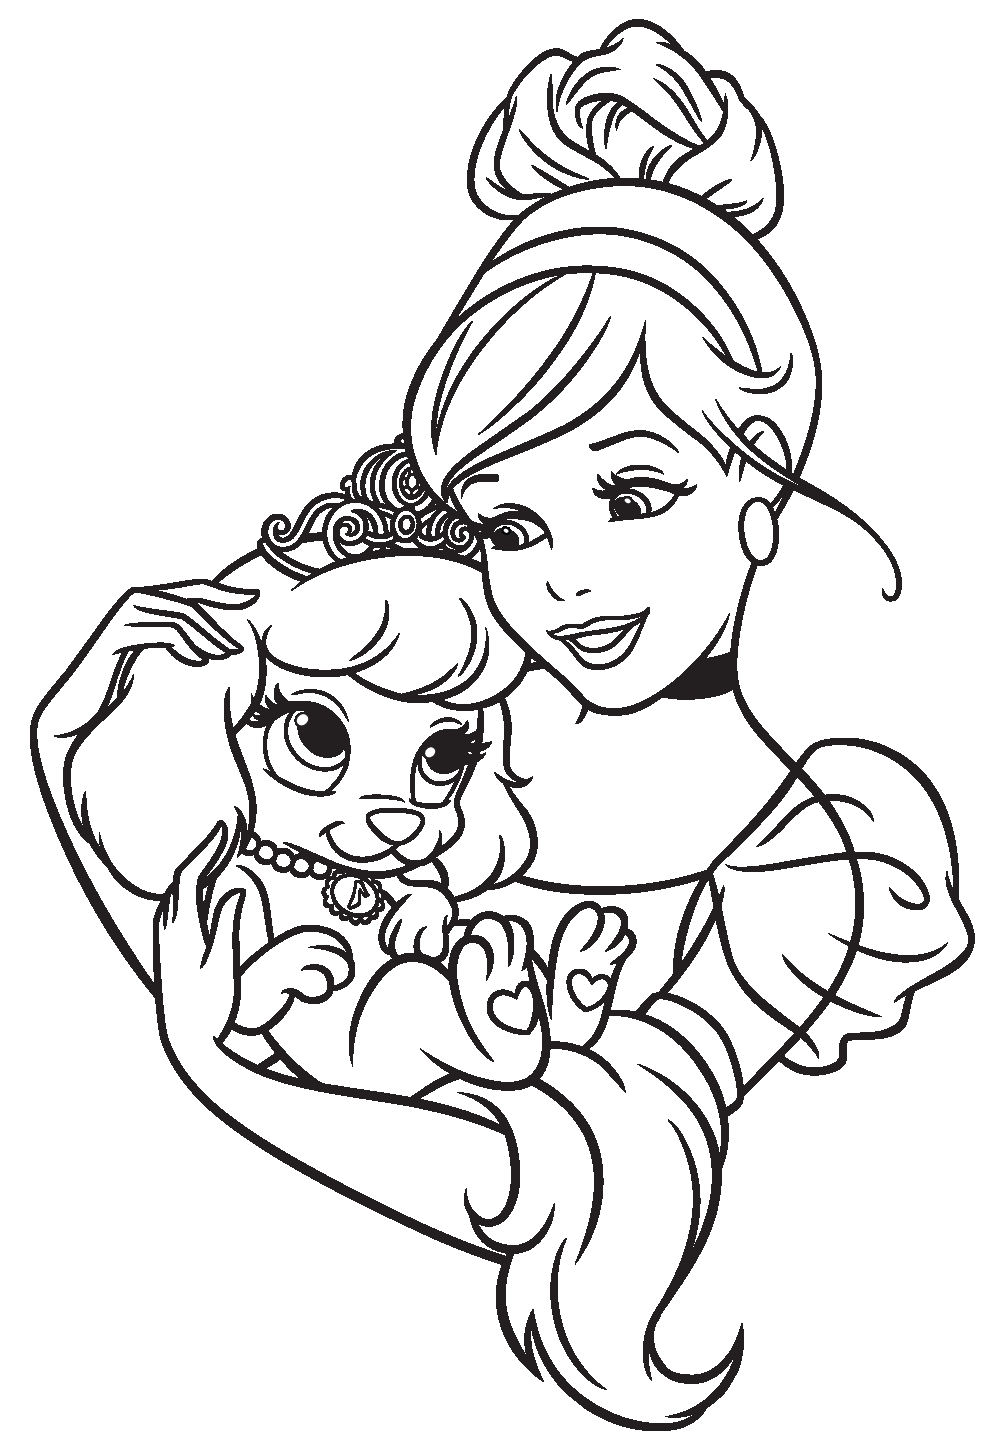 1004x1447 Best Of Princess Palace Pets Coloring Pages Collection Printable